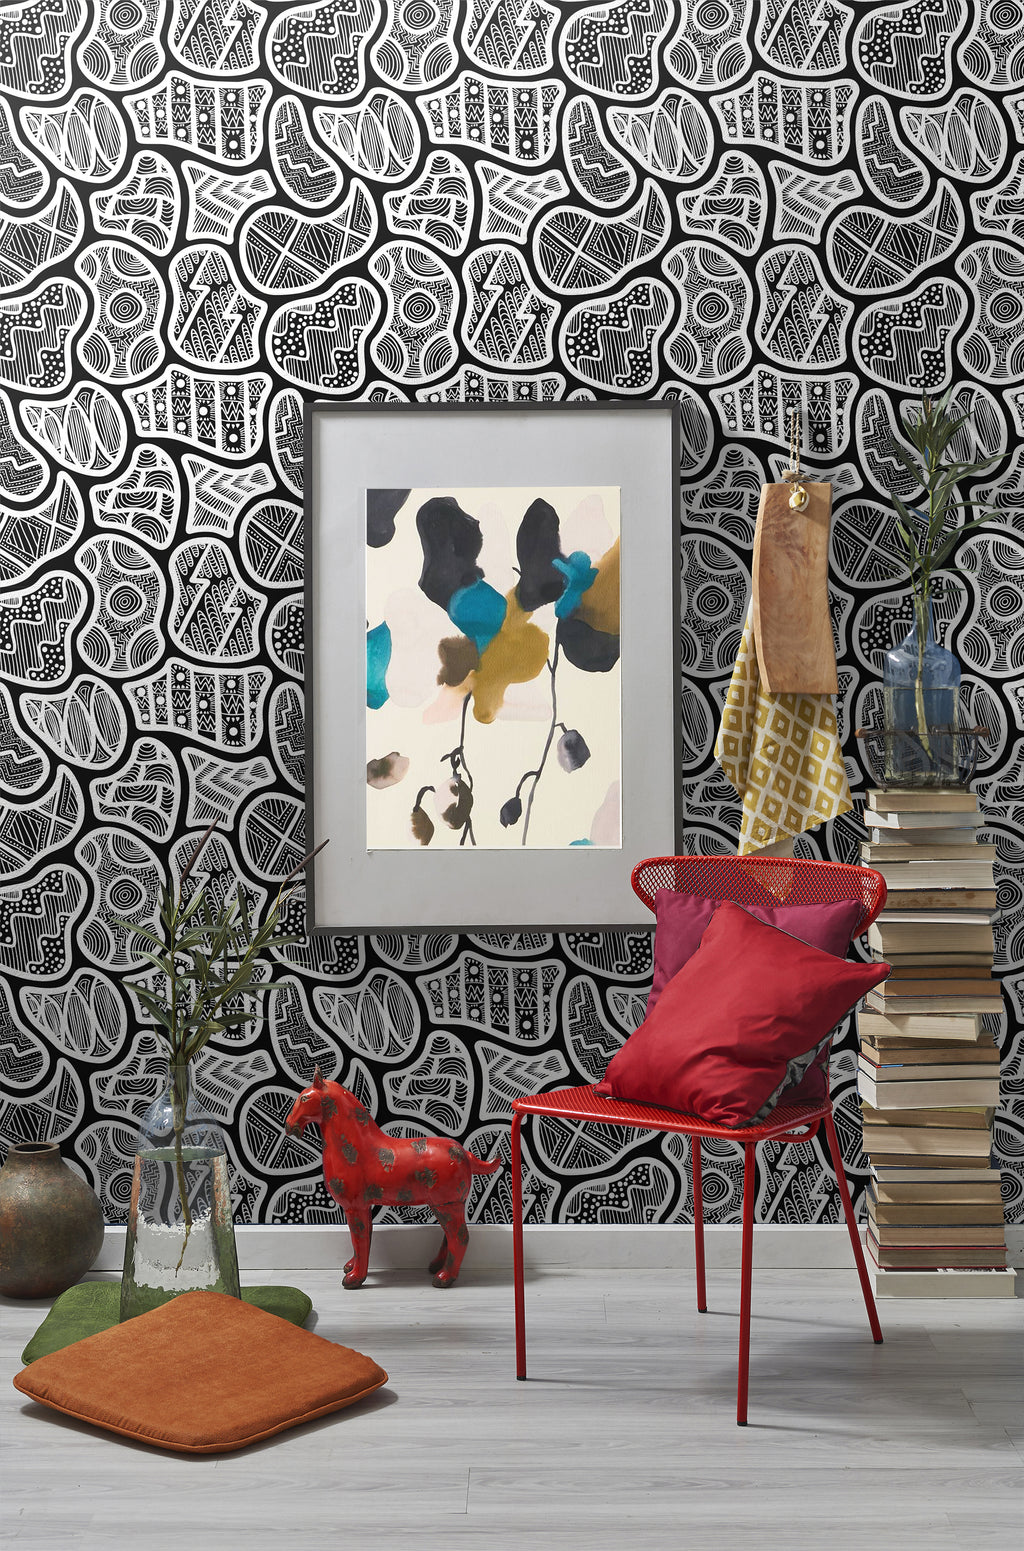 Black and white abstract shapes with detailed pattern removable wallpaper behind red chair, stack of books and picture frame